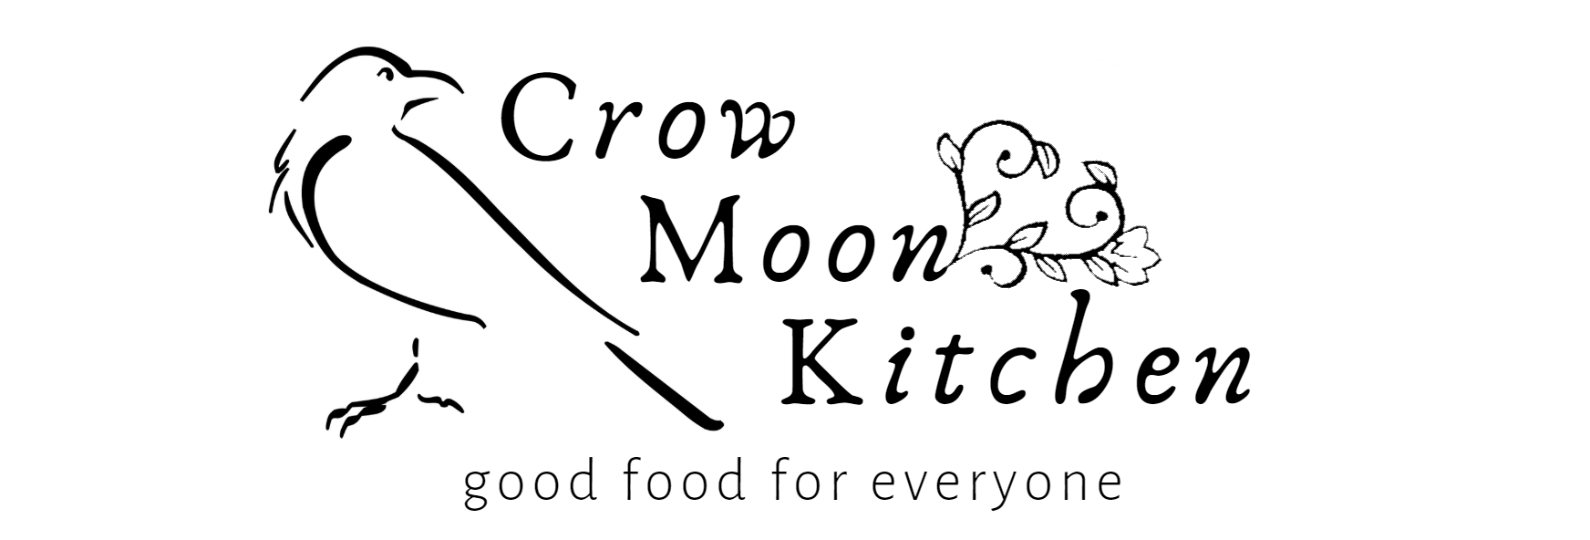 Crow Moon Kitchen